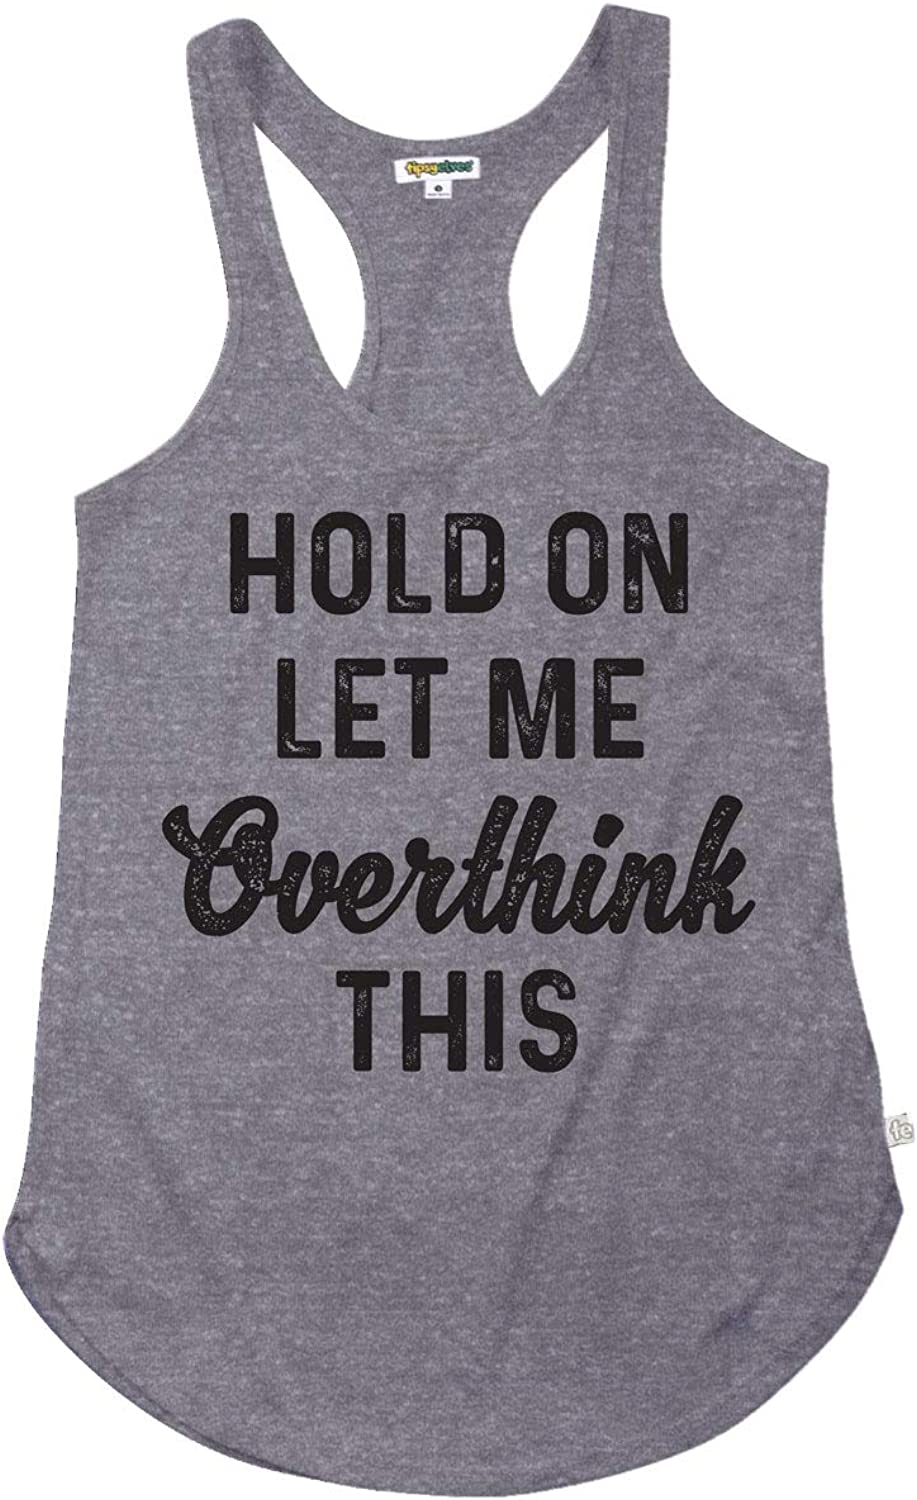 Funny Tank Tops for Women - Ladies' Silly Tank Top Shirts